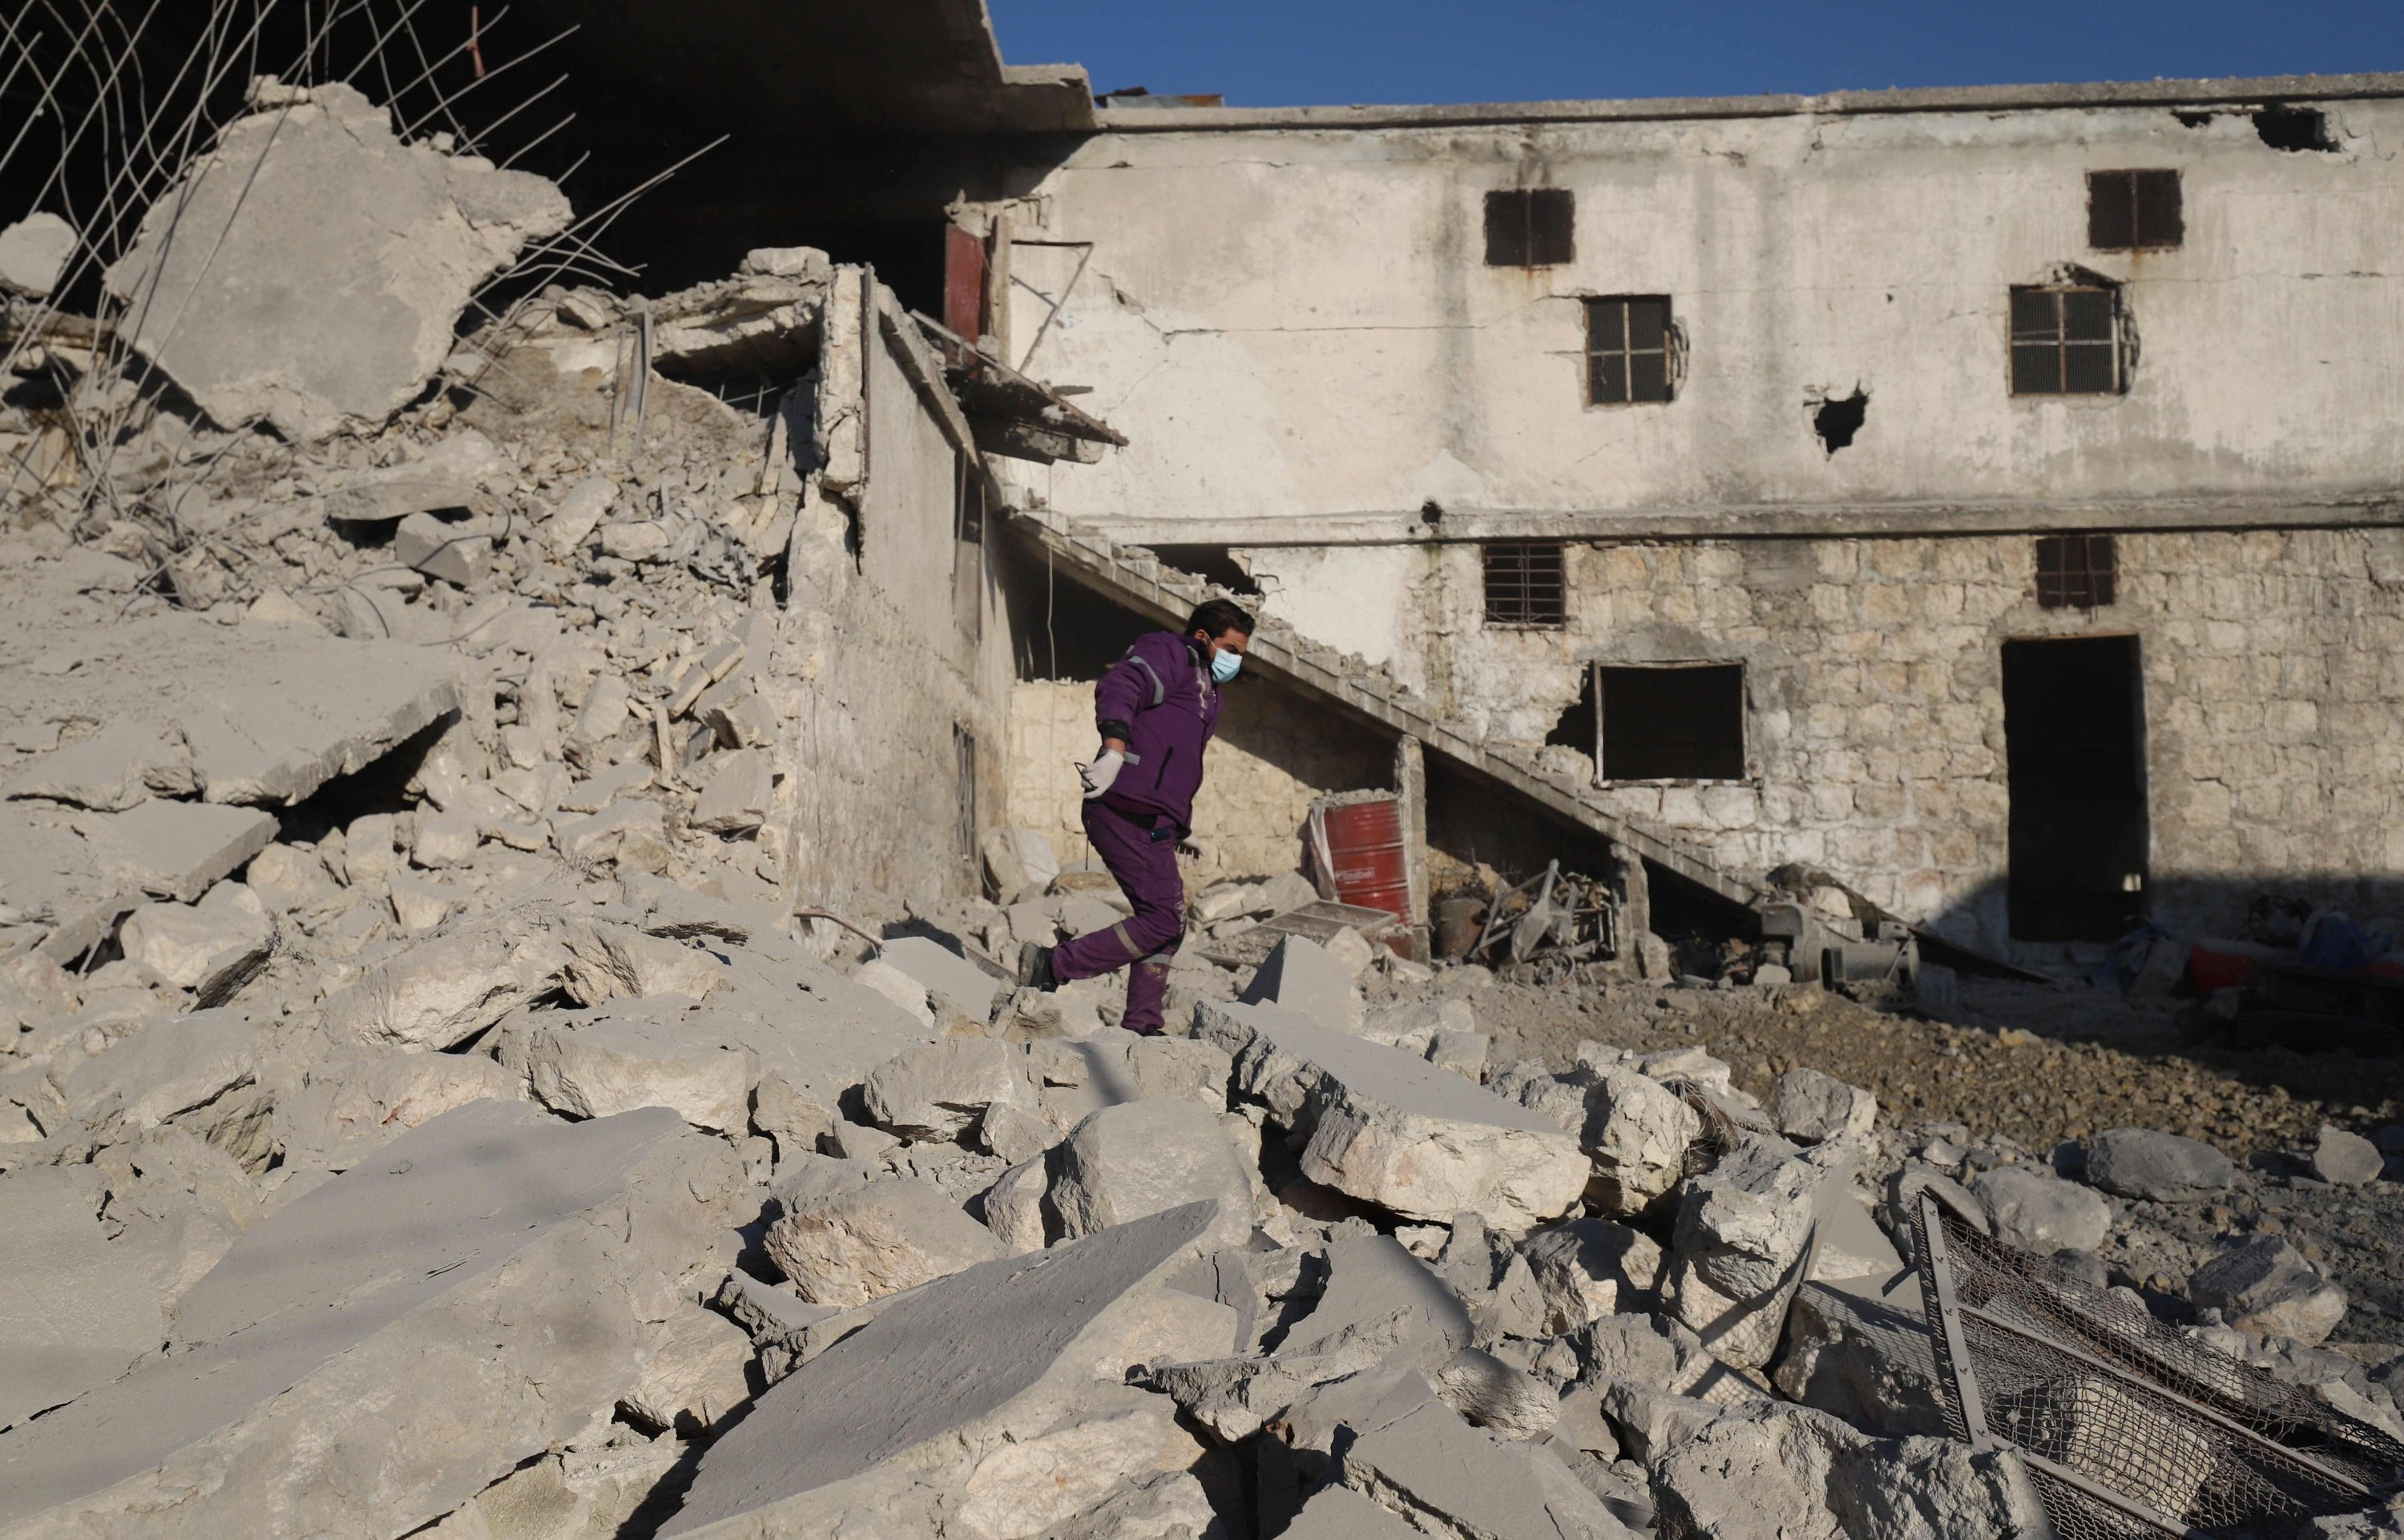 A Syrian man walks amid the rubble of a destroyed building following reported Russian airstrikes on the outskirts of the opposition-held northwestern city of Idlib, Syria, March 29, 2021. (Photo by Abdulaziz Ketaz via AFP)